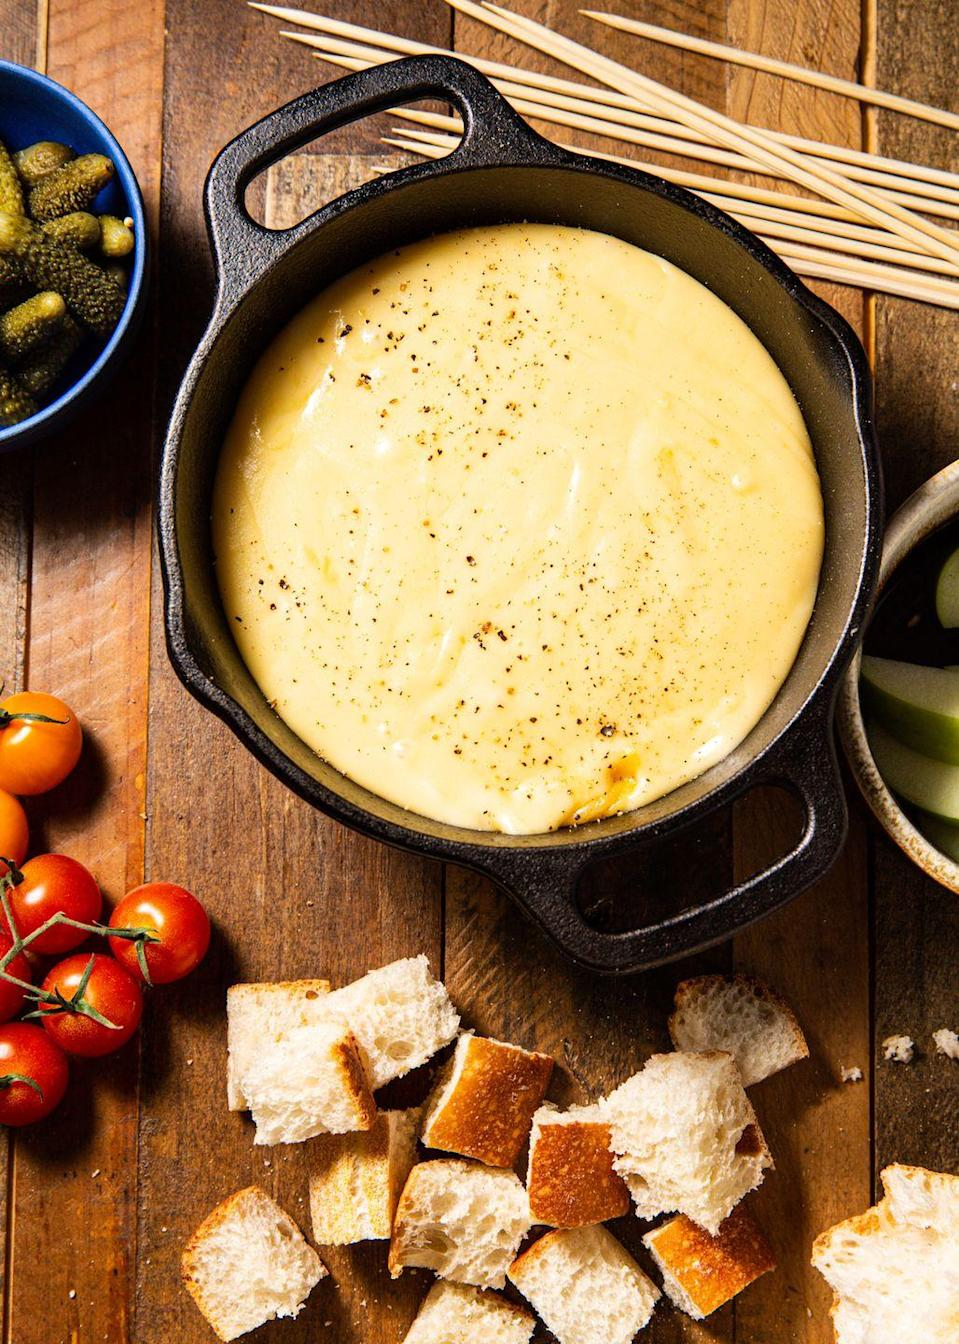 """<p>This is the fundamental fondue that started it all. </p><p>Get the recipe from <a href=""""https://www.delish.com/cooking/recipe-ideas/a30503896/cheese-fondue-recipe/"""" rel=""""nofollow noopener"""" target=""""_blank"""" data-ylk=""""slk:Delish"""" class=""""link rapid-noclick-resp"""">Delish</a>.</p>"""